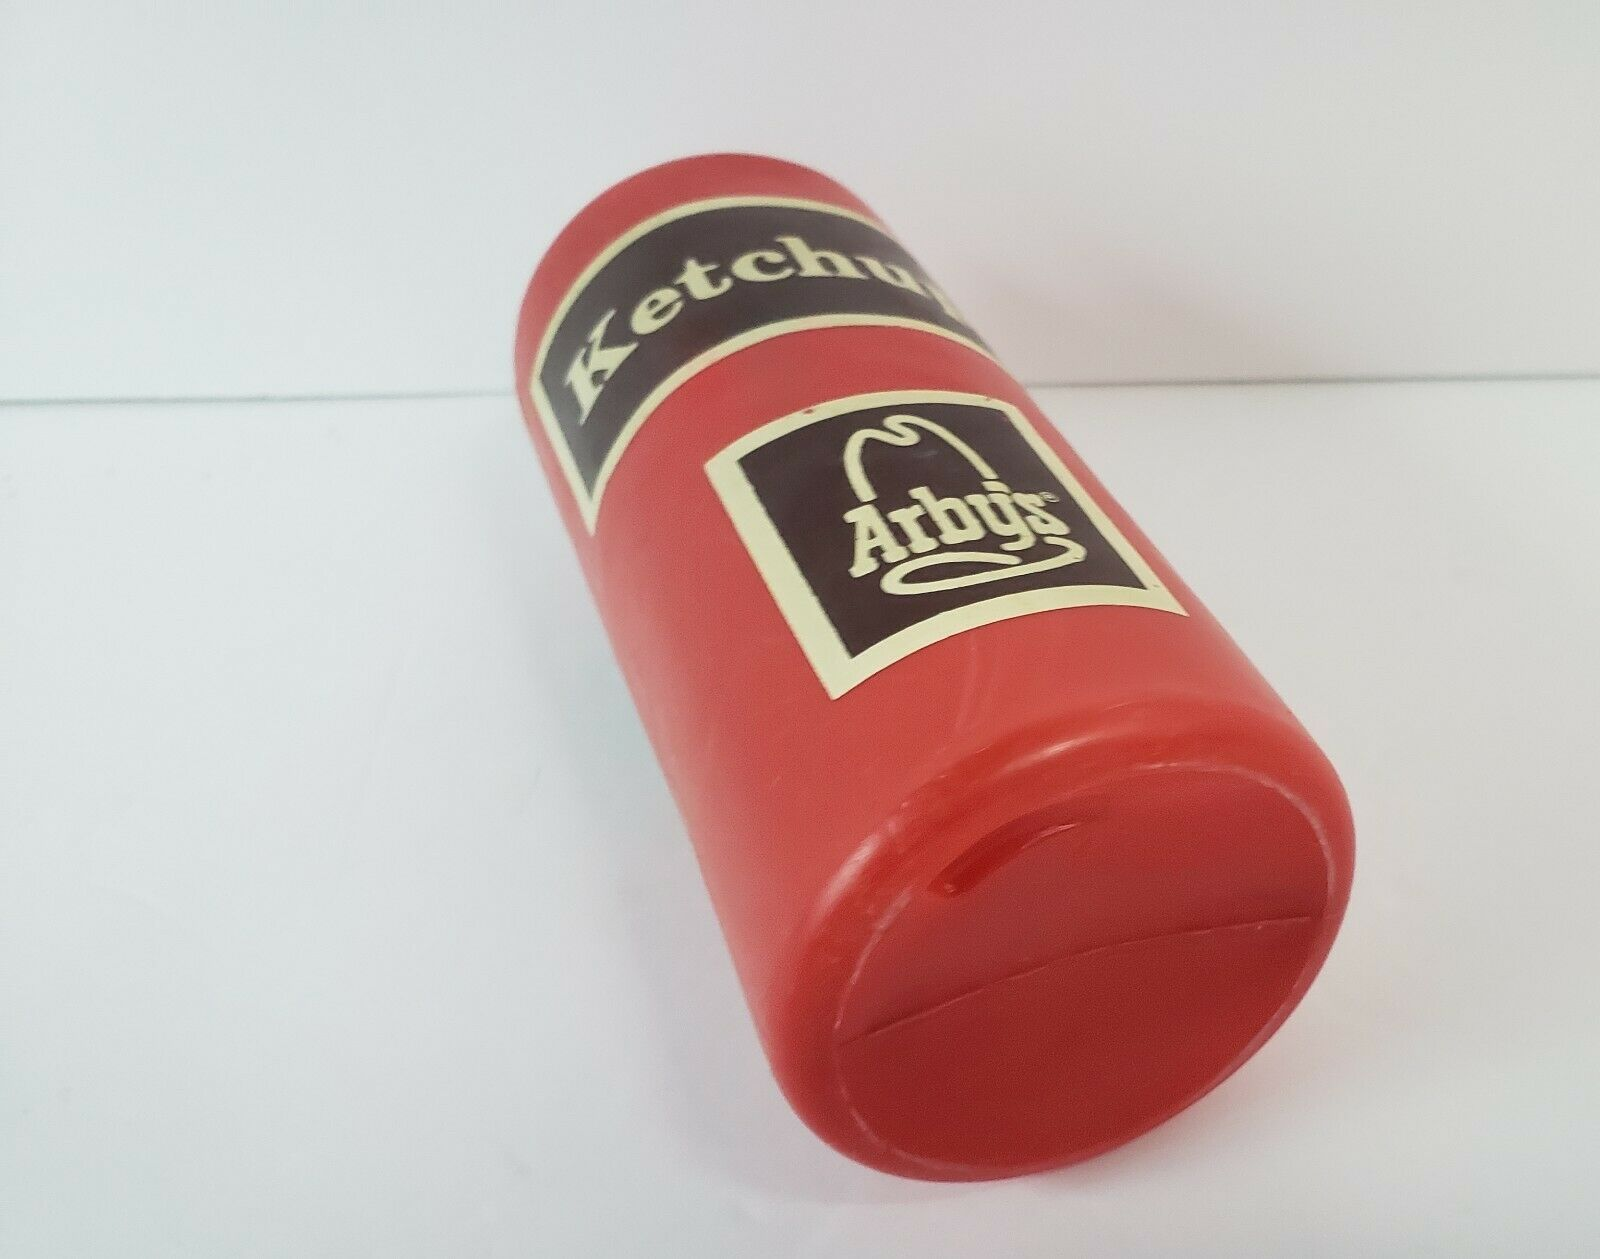 "Vintage Arby's Ketchup Squeeze Bottle - 1970's - Advertising - 7.5"" Tall image 5"